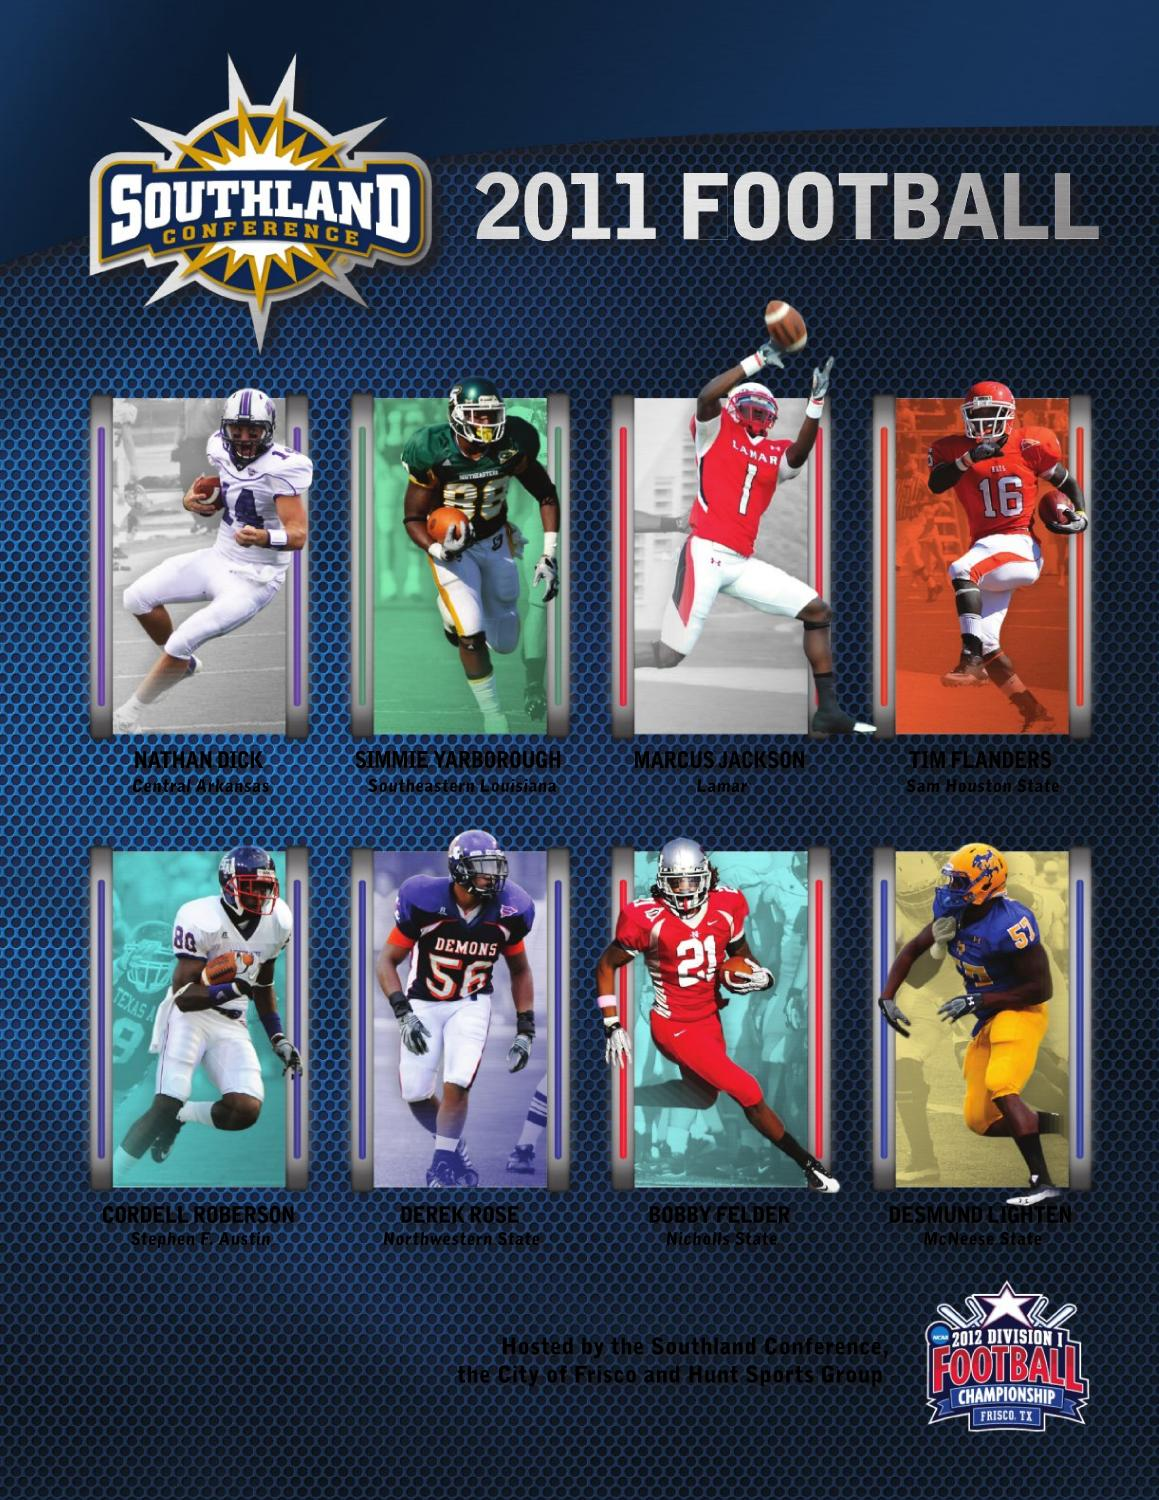 2011 Southland Conference Football Guide by Southland Conference - issuu 634e91eee